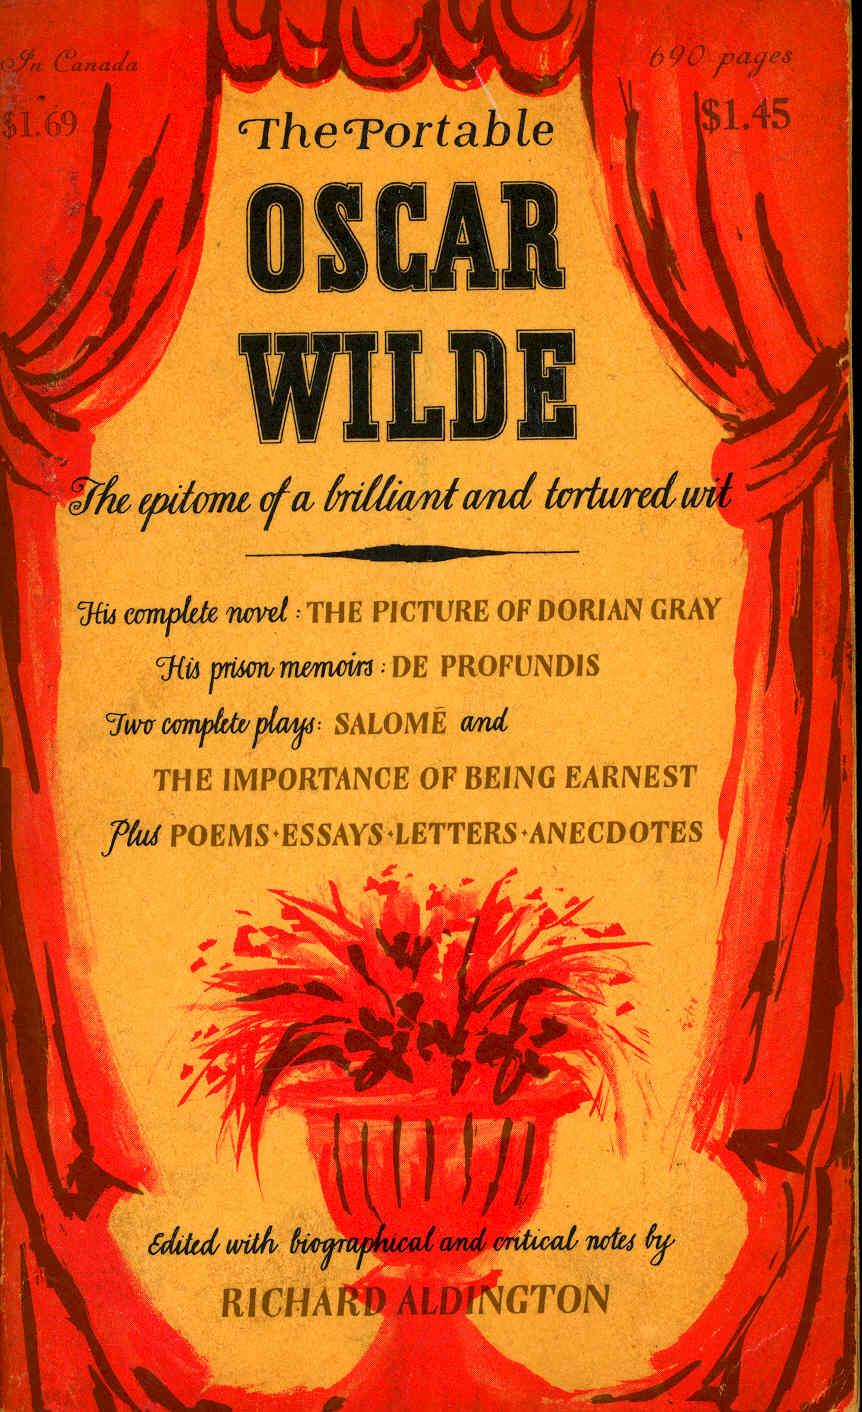 oscar wilde picture of dorian gray seller supplied images oscar wilde picture of dorian gray seller supplied images